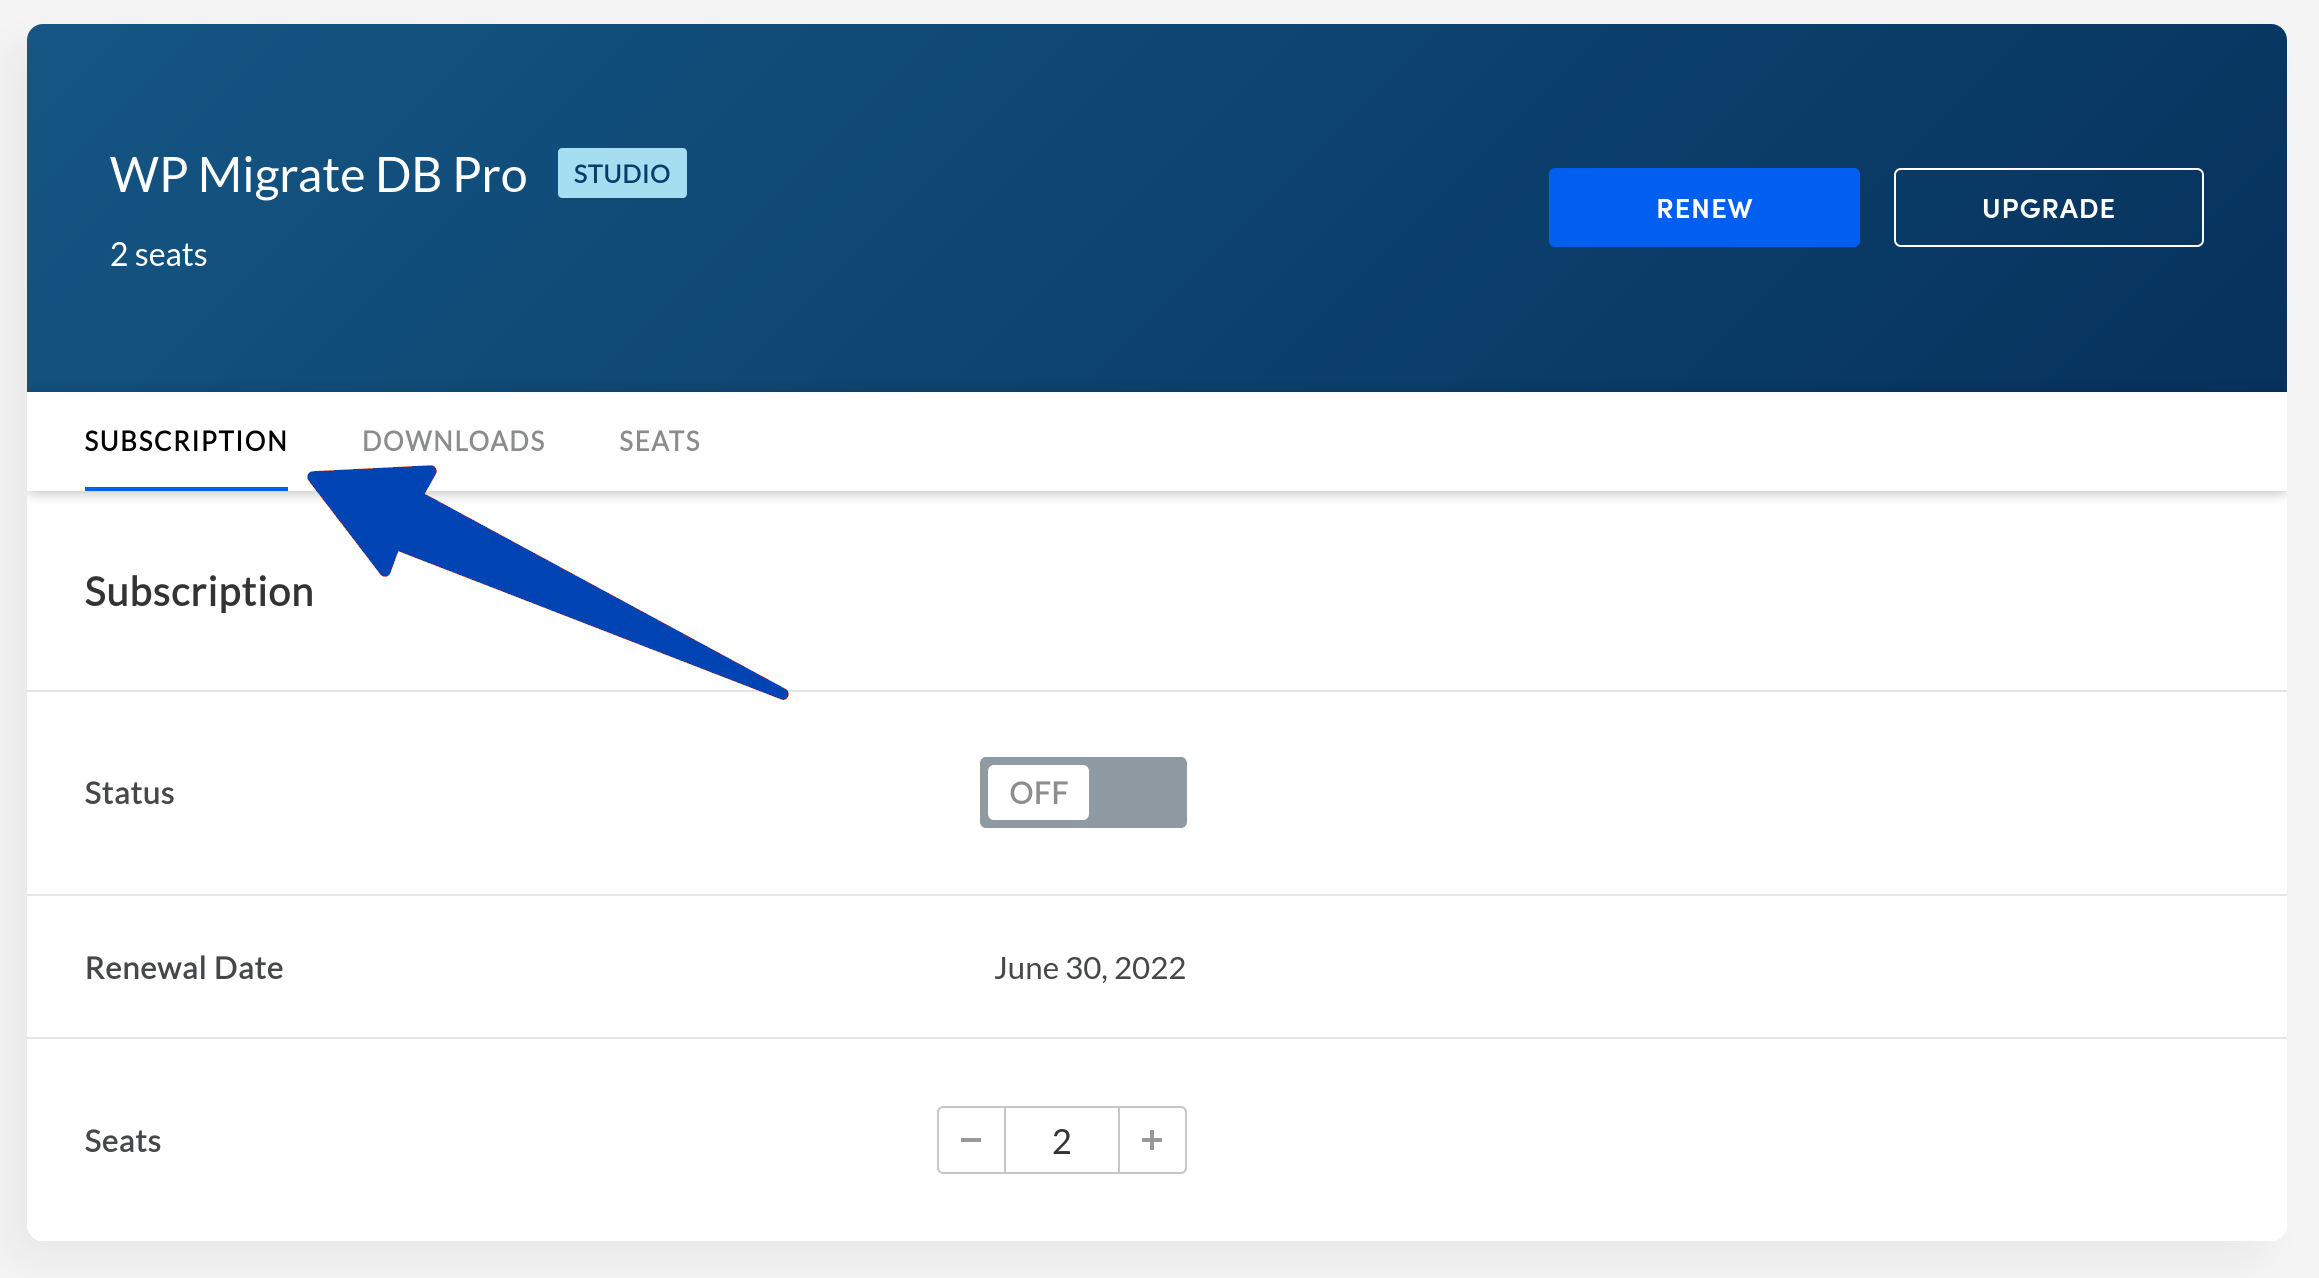 WP Migrate DB Pro Subscription Tab